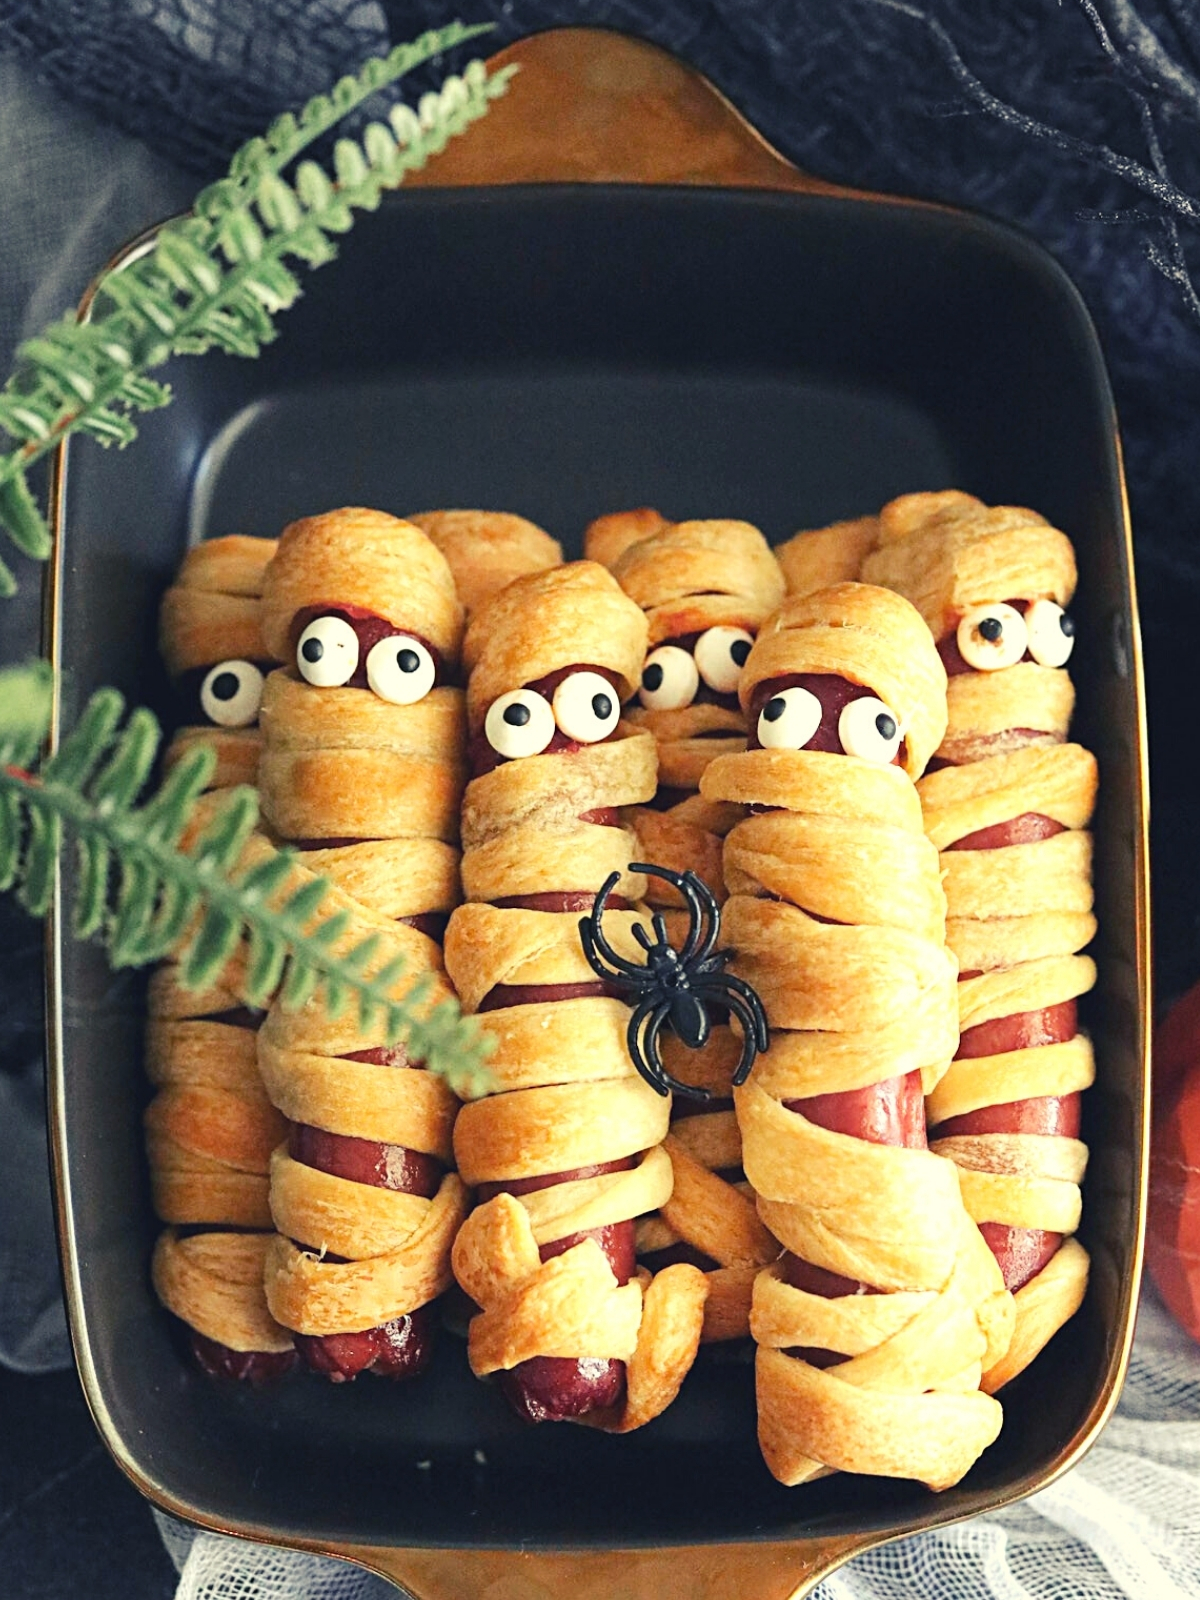 Eight hot dog mummies with candy eyes nesting in a black bowl for Halloween.